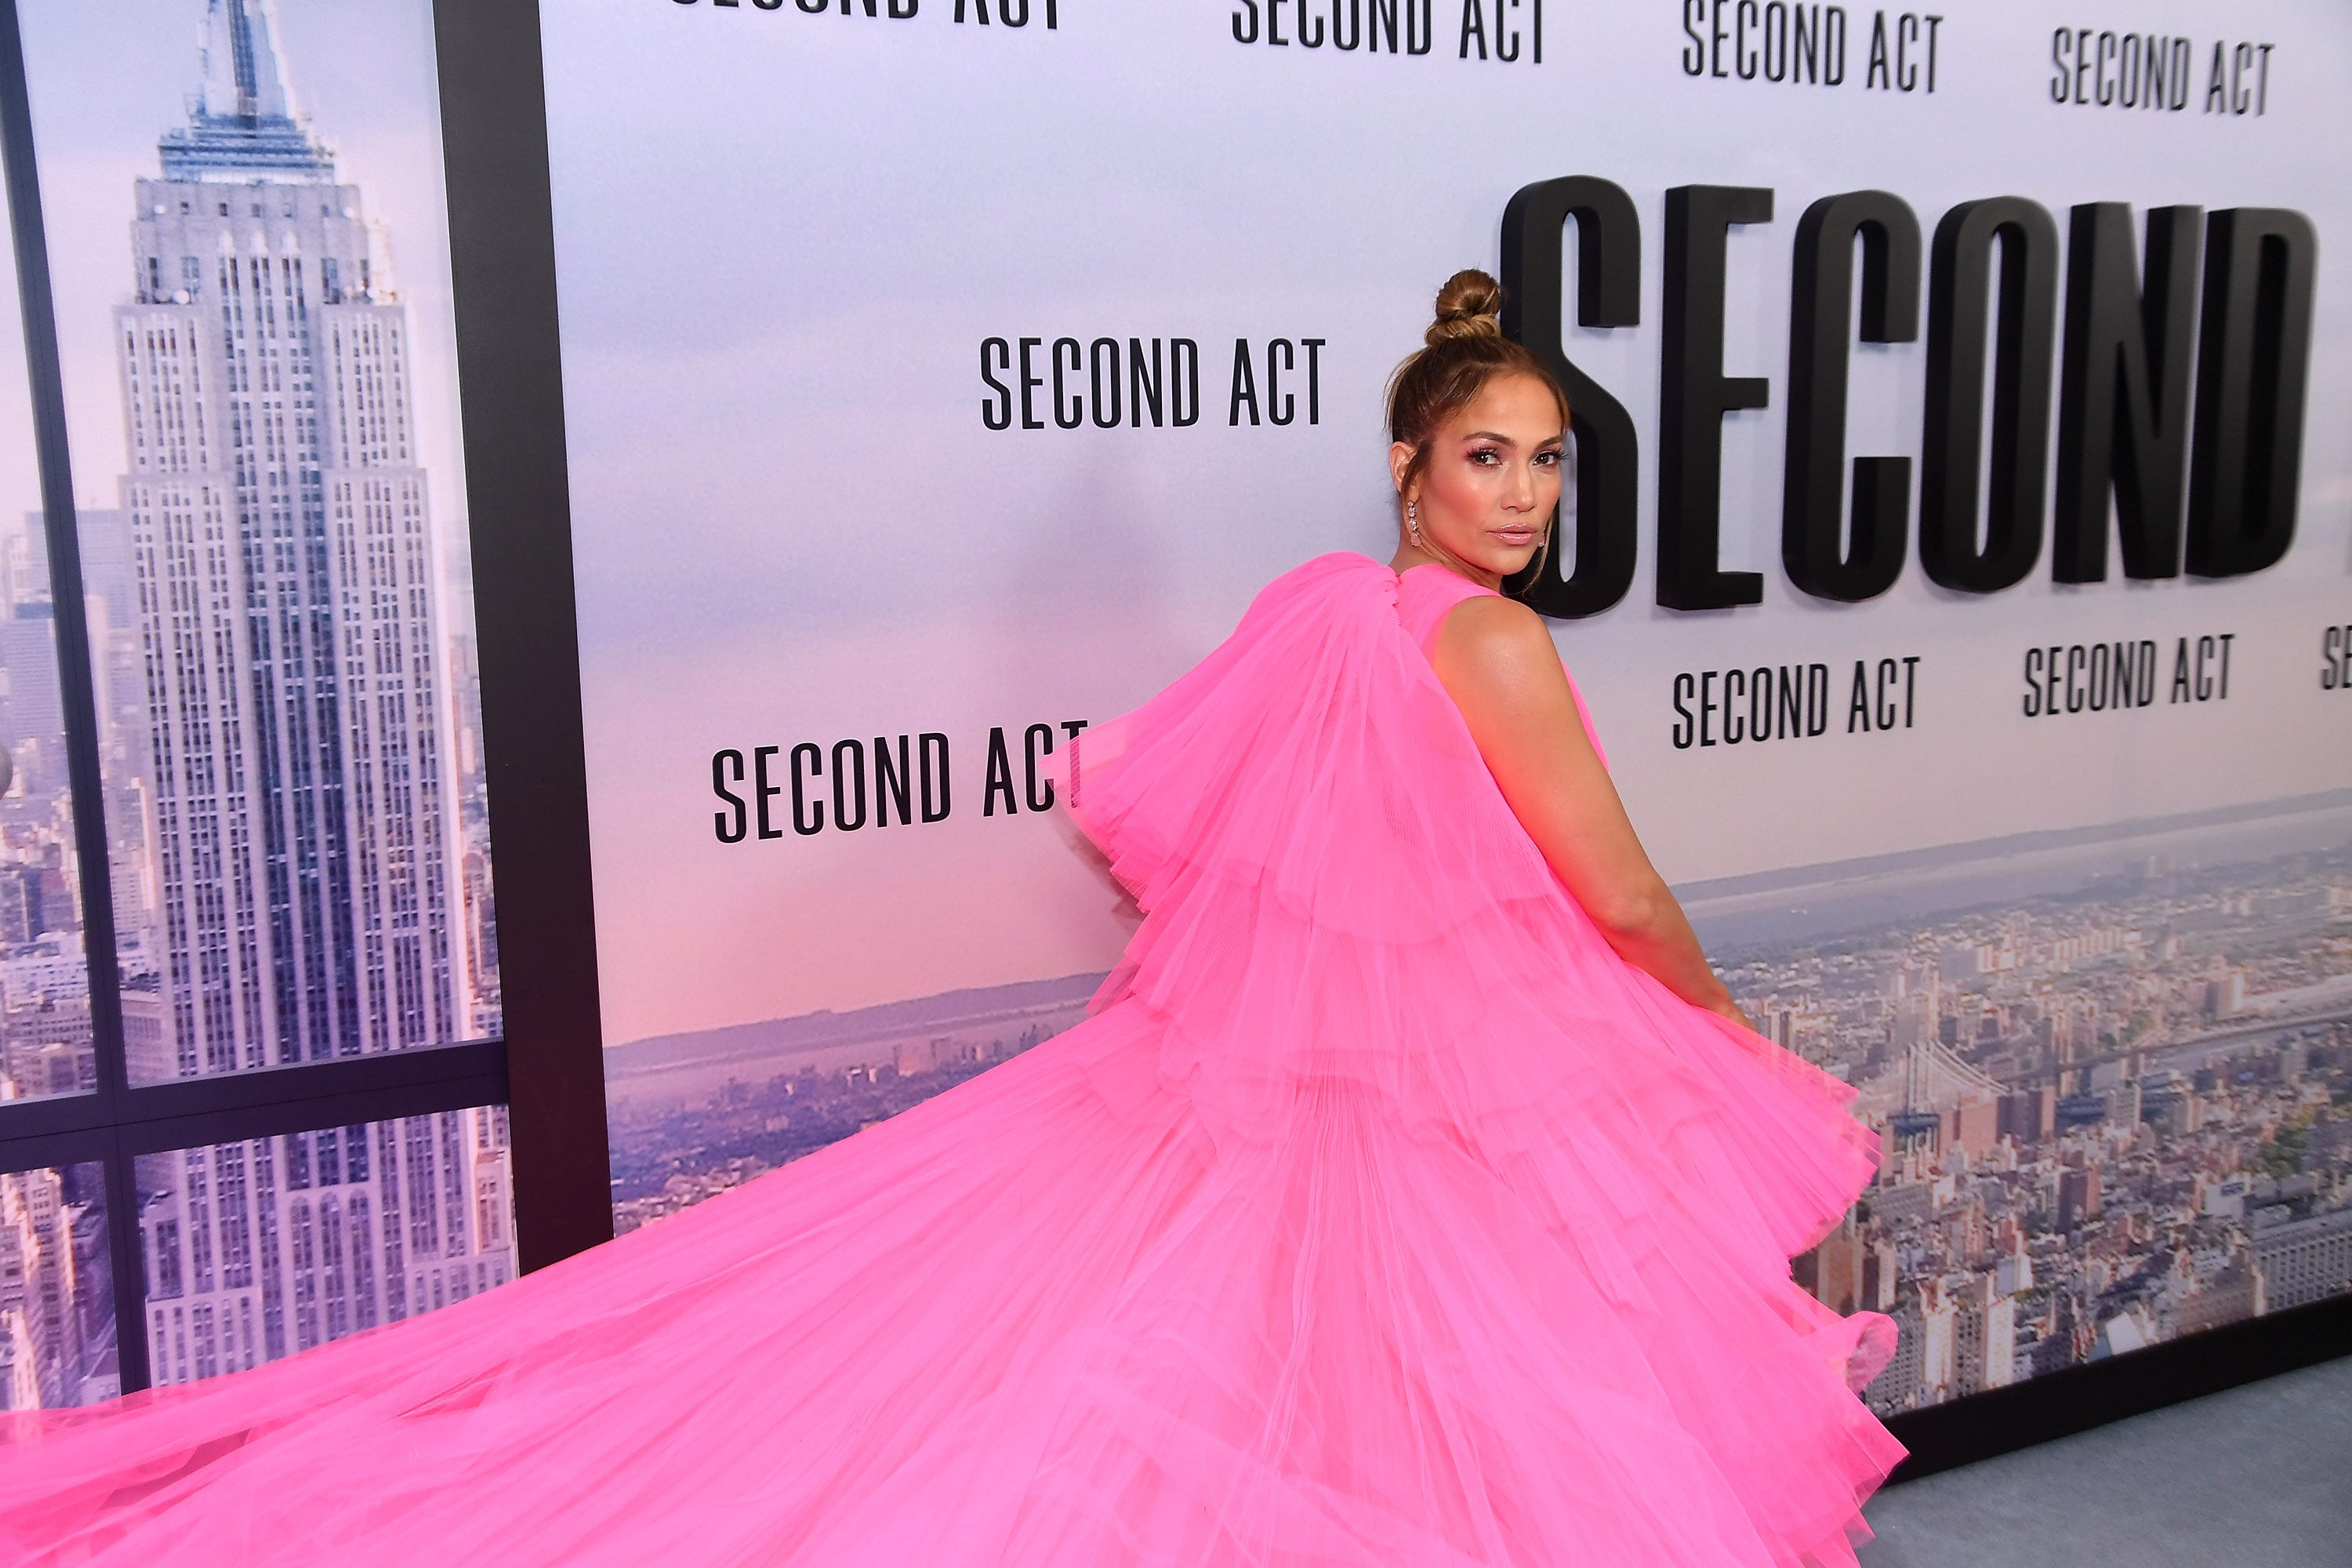 Jennifer Lopez dances with daughter Emme in powerful 'Limitless' video